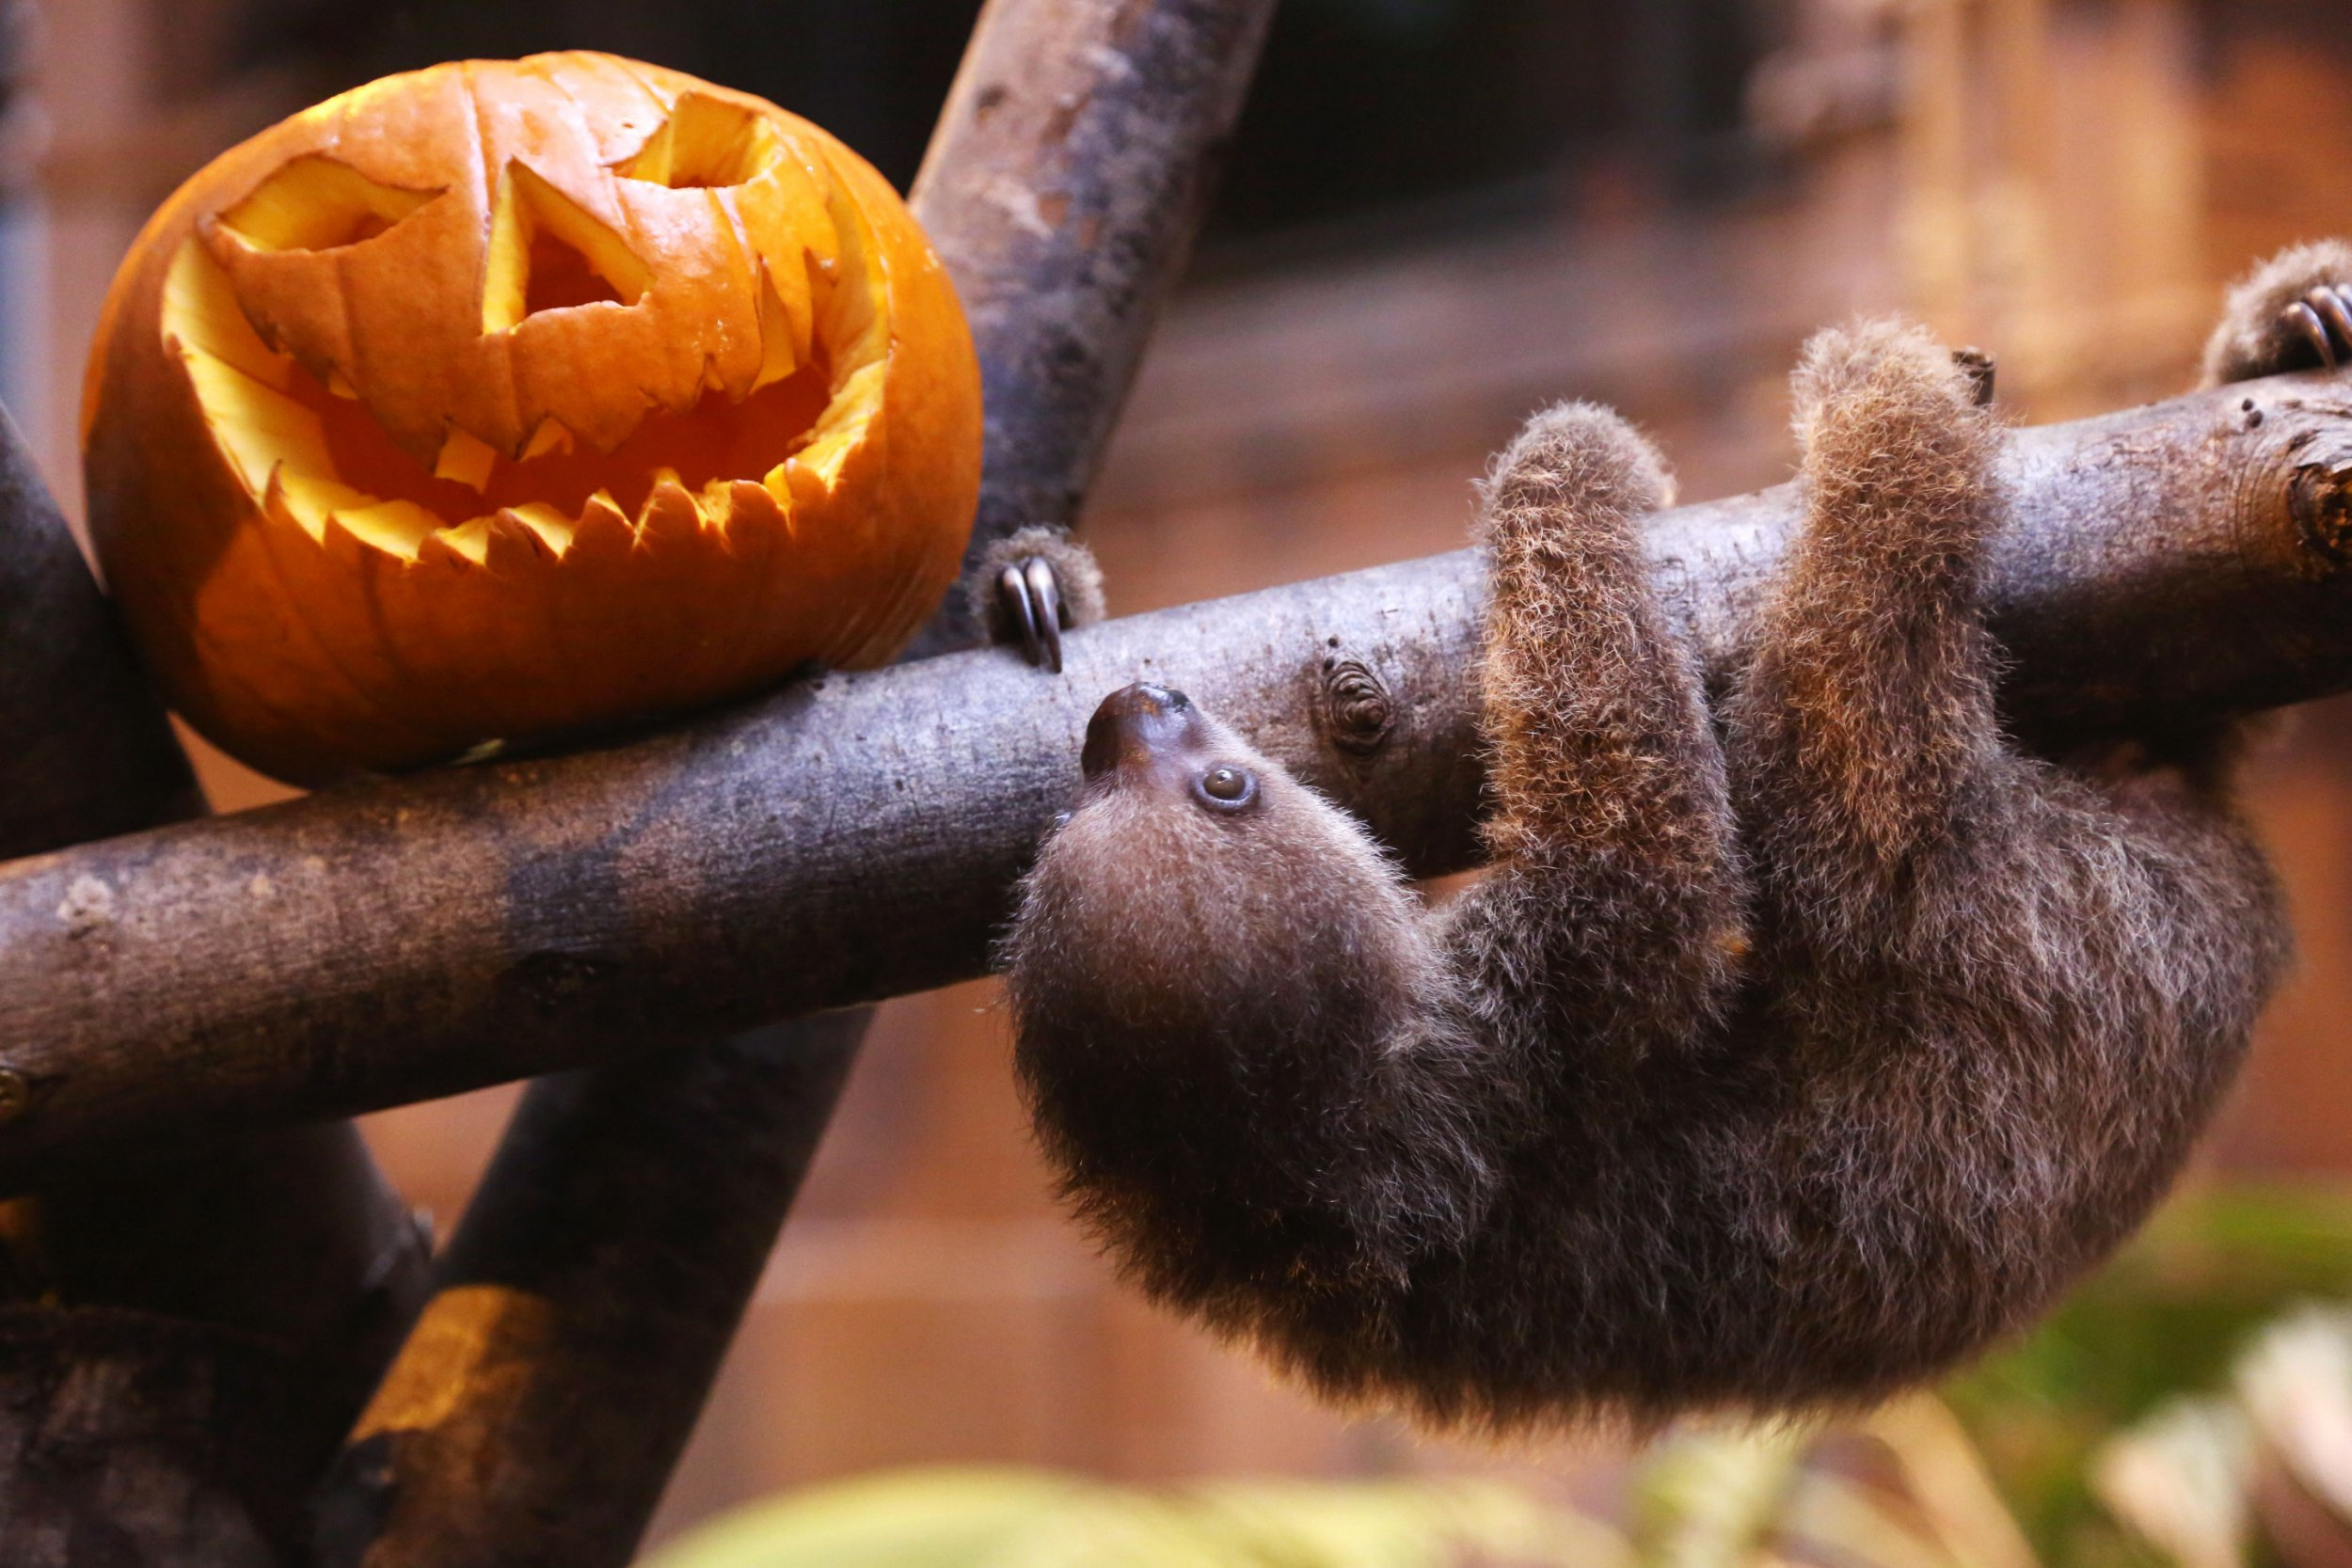 """CREDIT: ZSL/REX Shutterstock. Only for use in this story. Editorial Use Only. No stock, books, advertising or merchandising without photographer's permission Mandatory Credit: Photo by ZSL/REX/Shutterstock (5293674d) Two-toed sloth (Choloepus didactylus) baby with Halloween pumpkin Two-toed sloth baby celebrates first Halloween, London Zoo, Britain - 23 Oct 2015 ZSL London Zoo?s resident two-toed sloth (Choloepus didactylus) baby celebrated his first Halloween today (23 Oct), with a special pumpkin carved by his keepers. The infant, who will turn five months old on Halloween itself, is being hand-reared by zookeeper Kelly-Anne Kelleher after his mum Marilyn stopped producing milk and was unable to feed him. Living up to his species? lazy reputation, Edward, named after the famous movie character because of his scissor-like claws, does everything slowly, including investigating spooky pumpkins. Zookeeper Kelly-Anne Keller said: ?Edward doesn?t do anything quickly, so it took him a while to get up and climb over to take a look at his Jack o? lantern ? but he was really intrigued by the Halloween-inspired gift."""""""